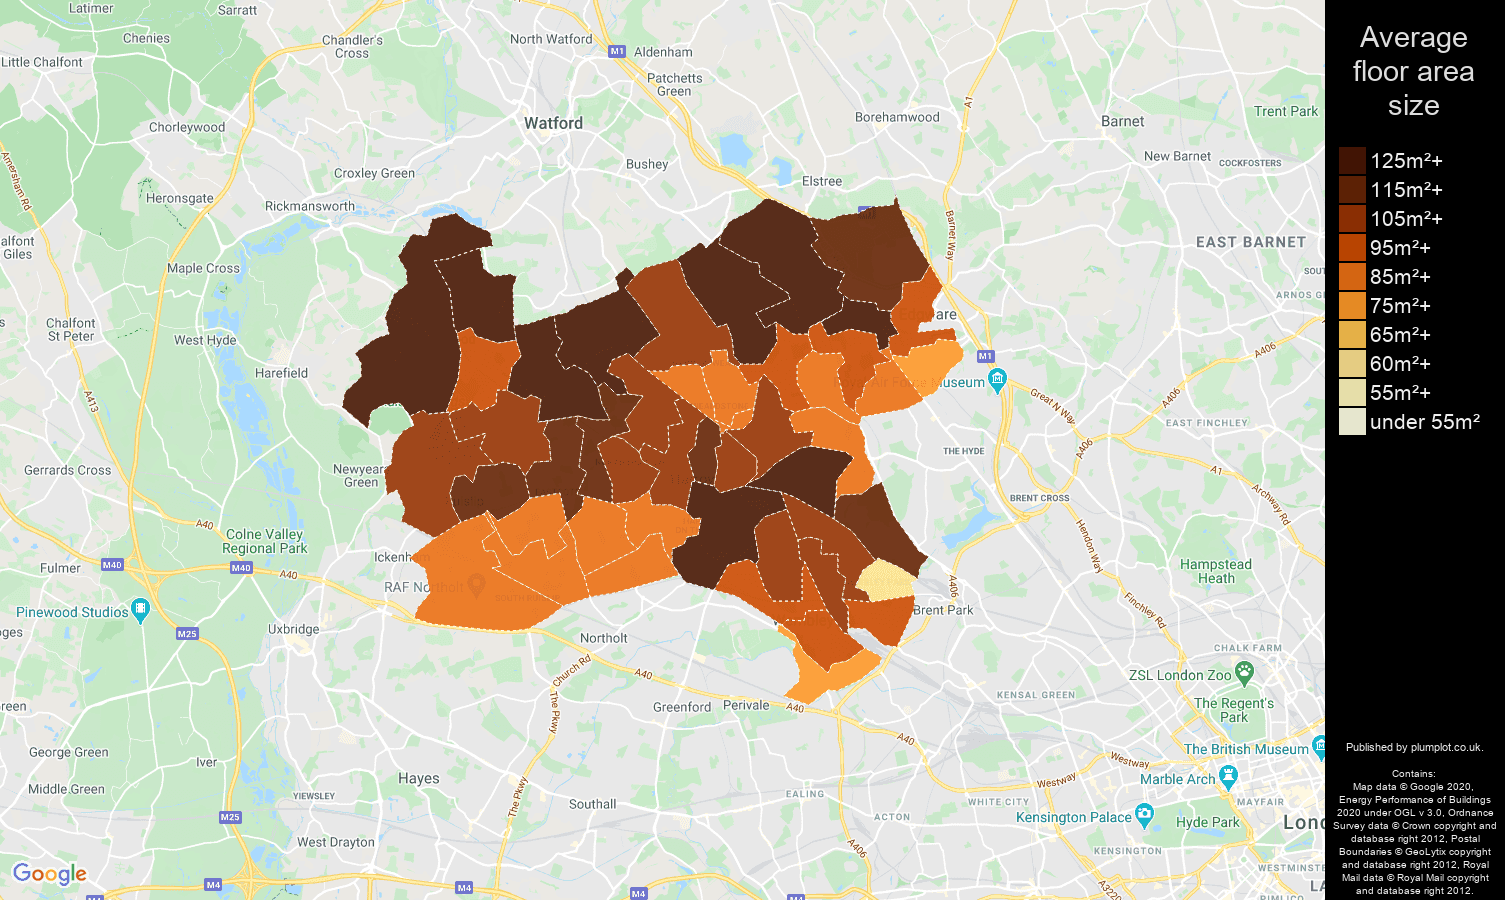 Harrow map of average floor area size of houses